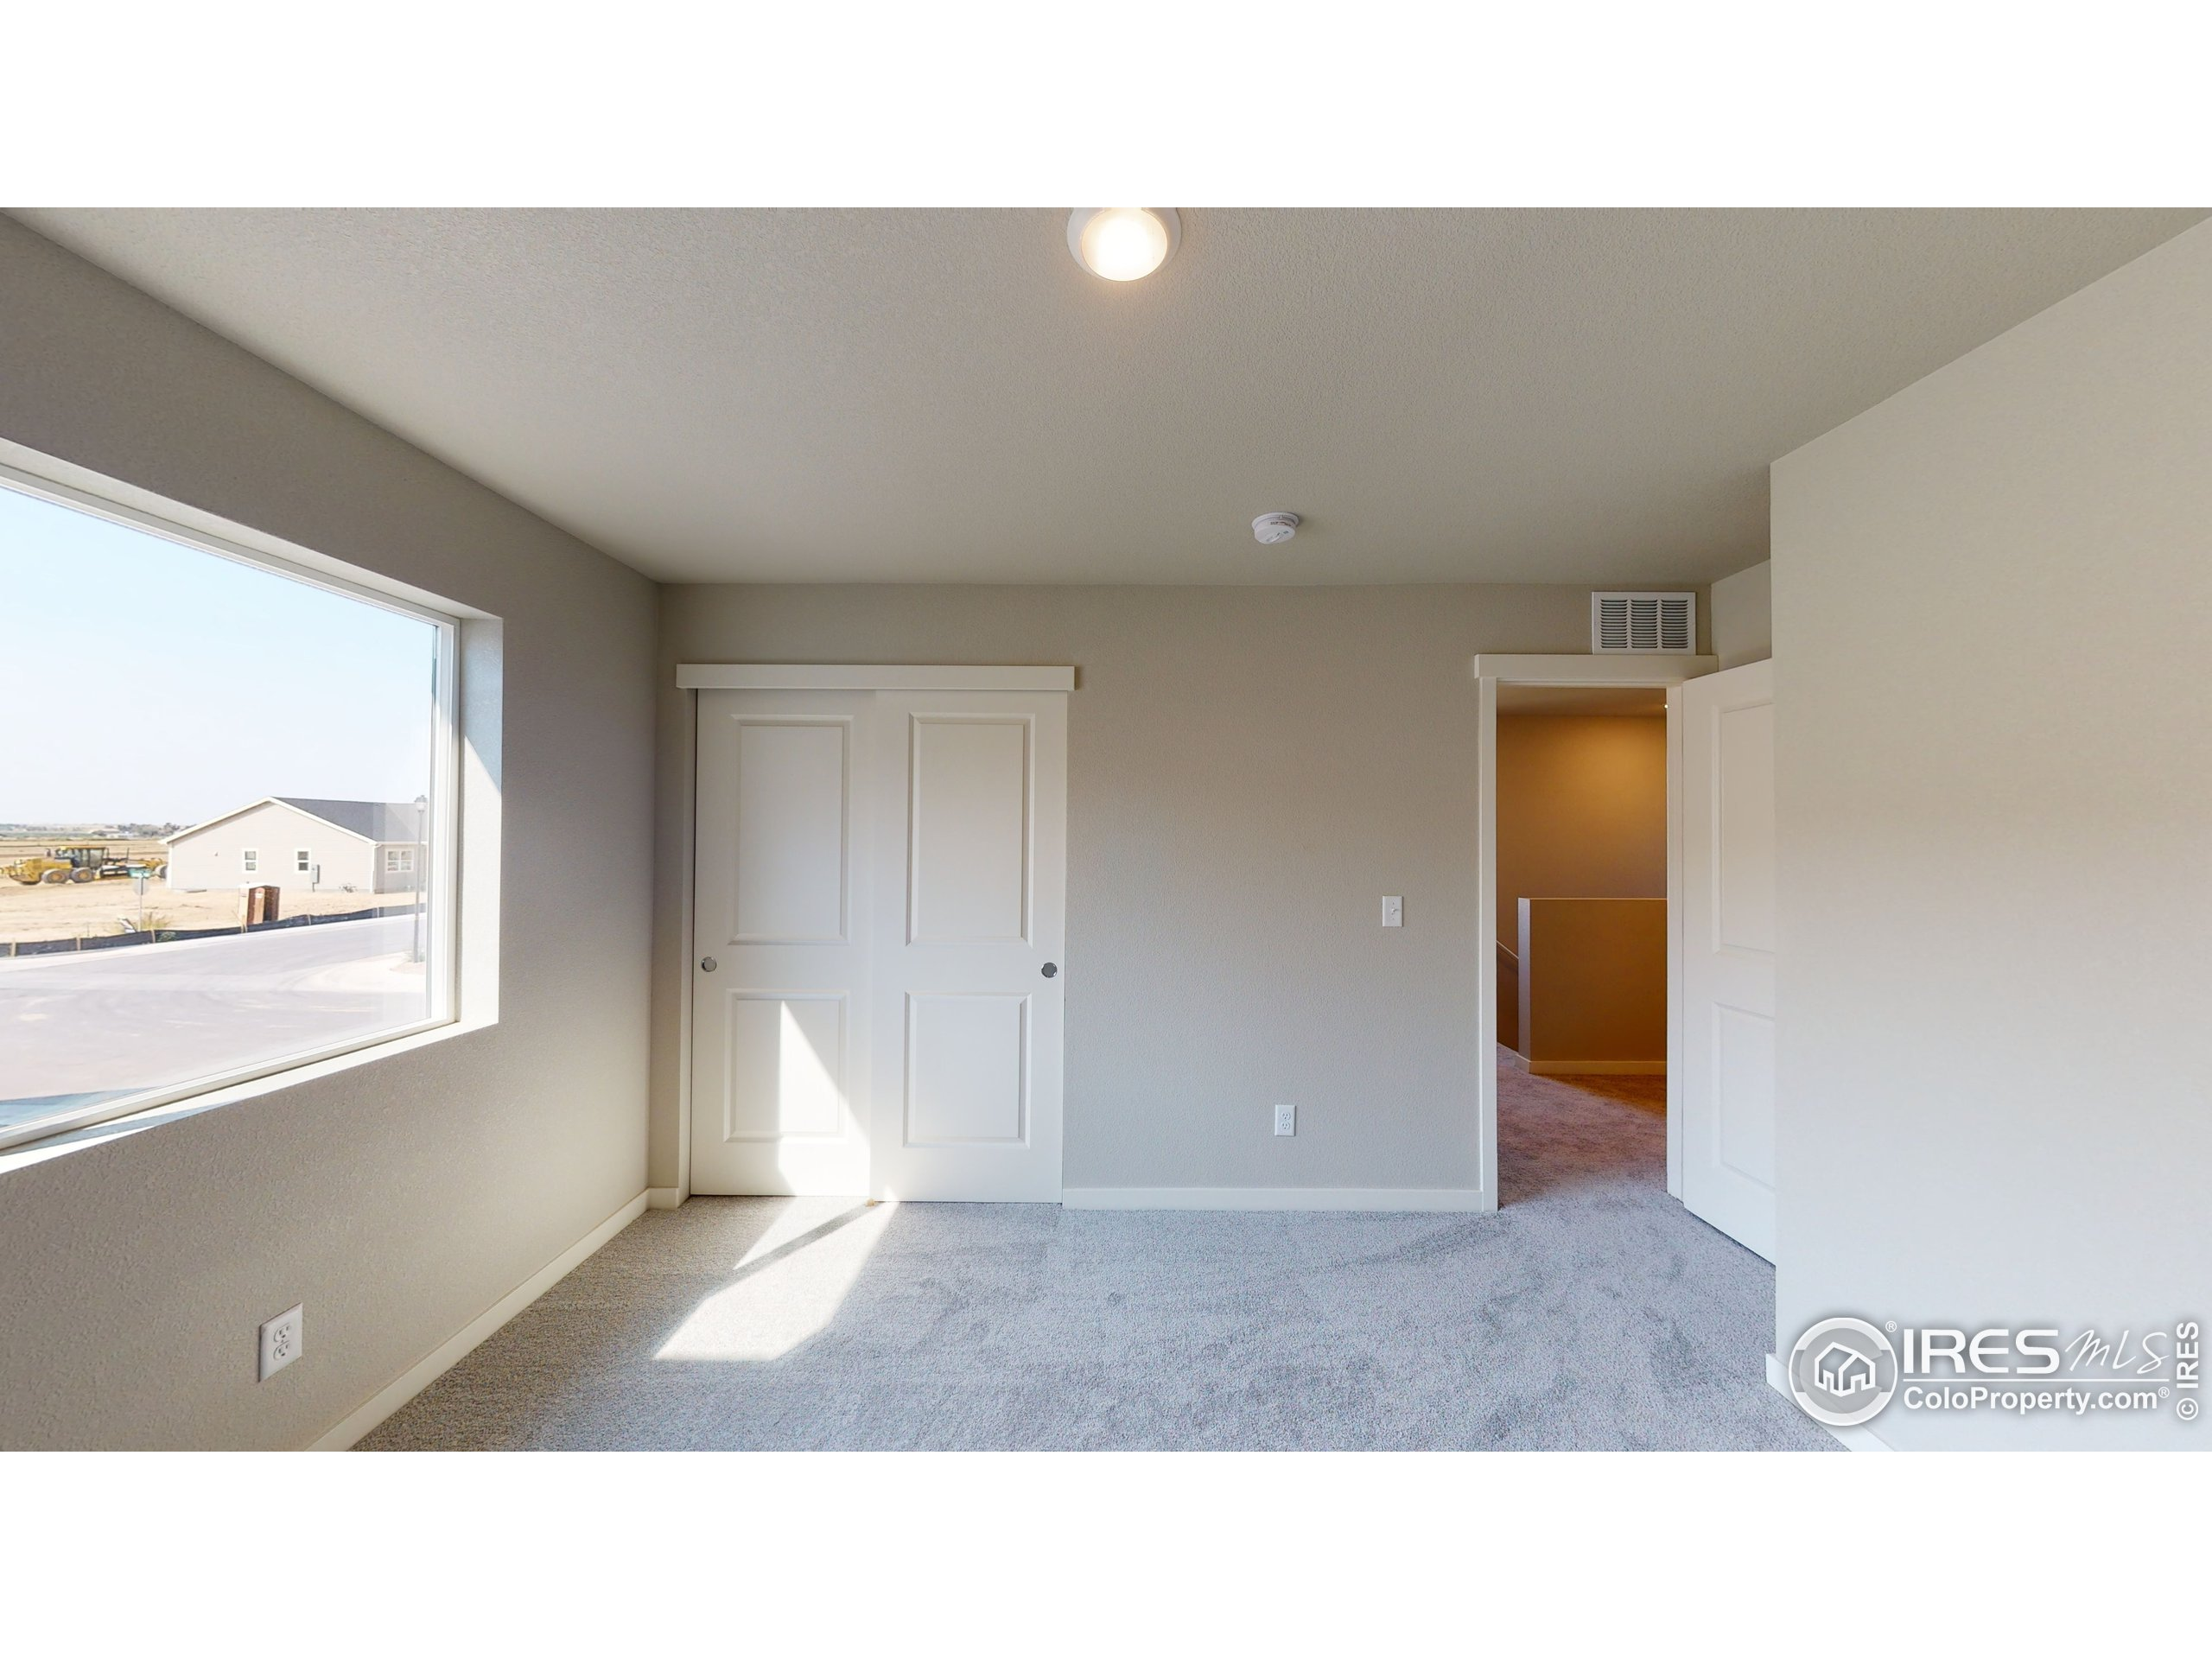 Stock photo, may show optional upgrades/Bedroom 2